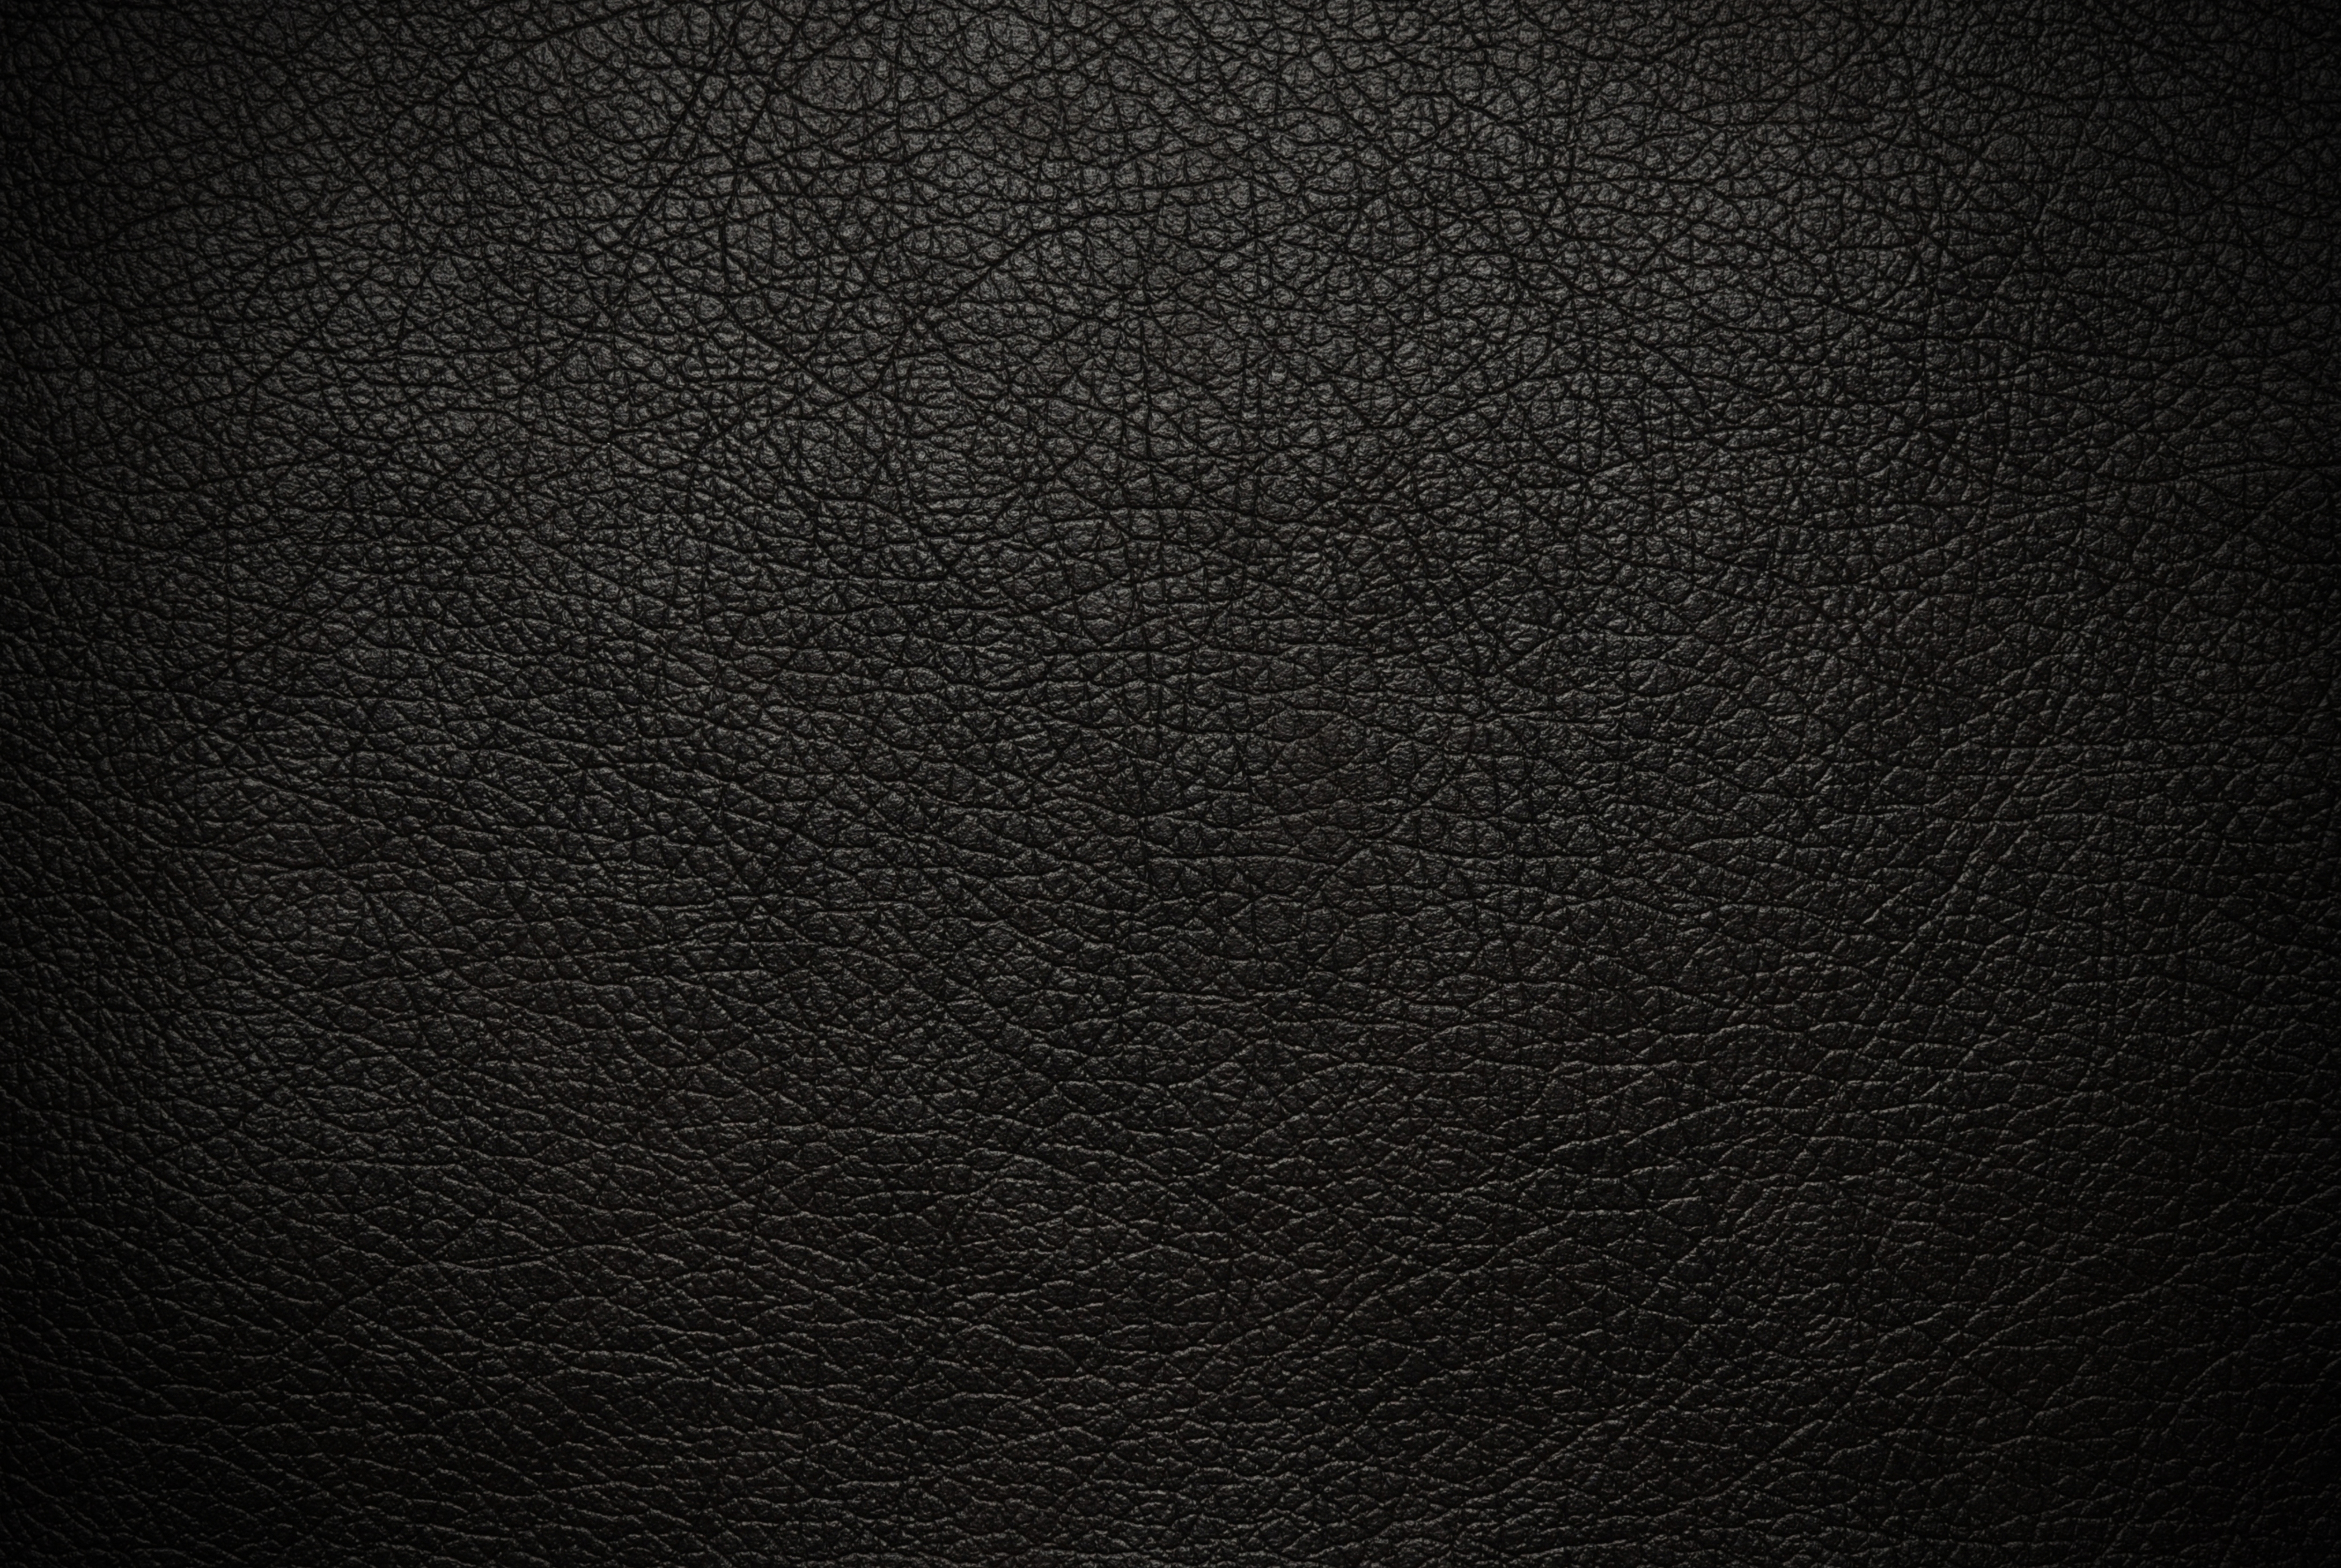 leather black cracked background texture wallpaper 5000x3350